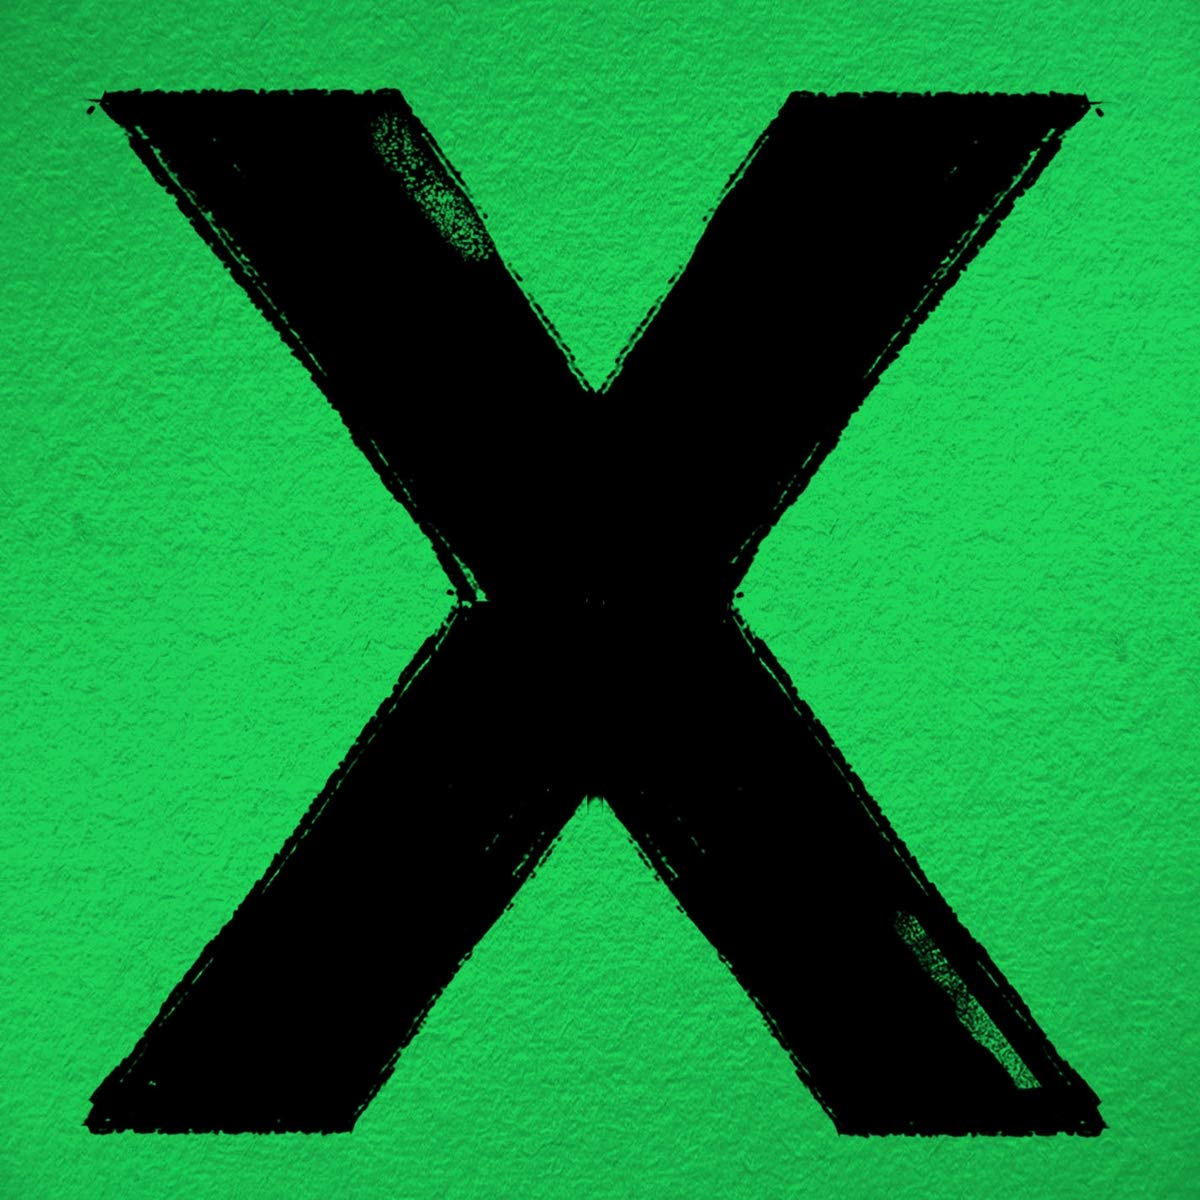 ed sheeran x album mp3 free download